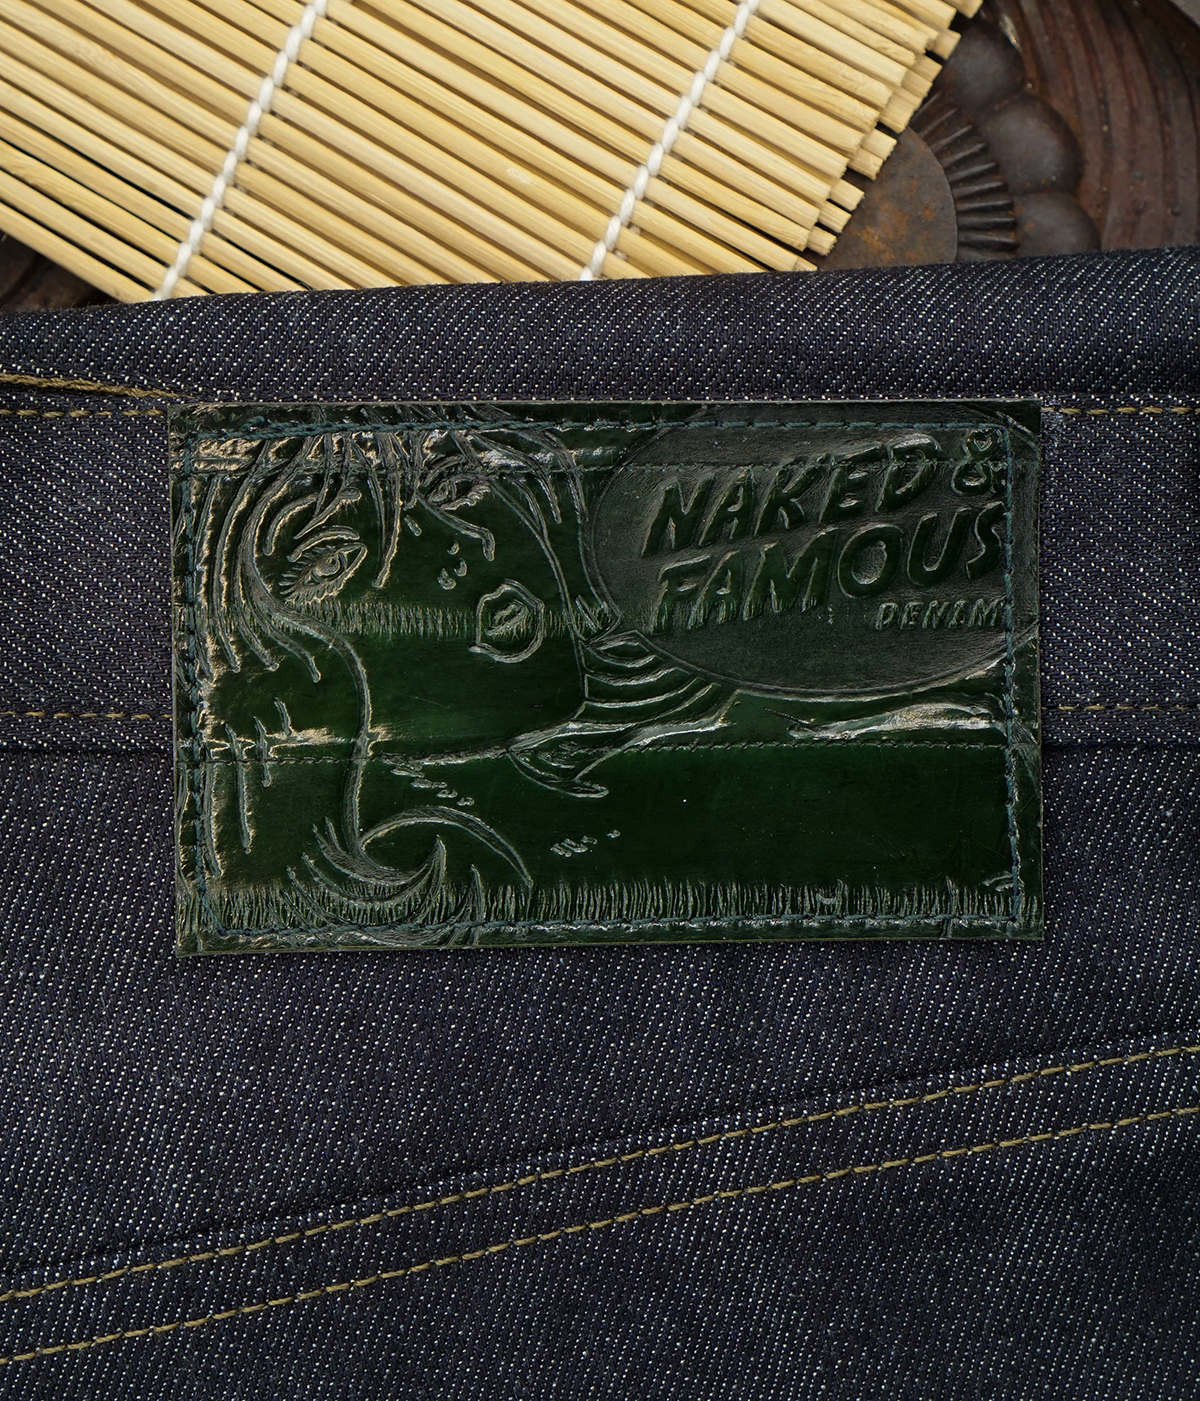 Eel Skin Leather Patch!